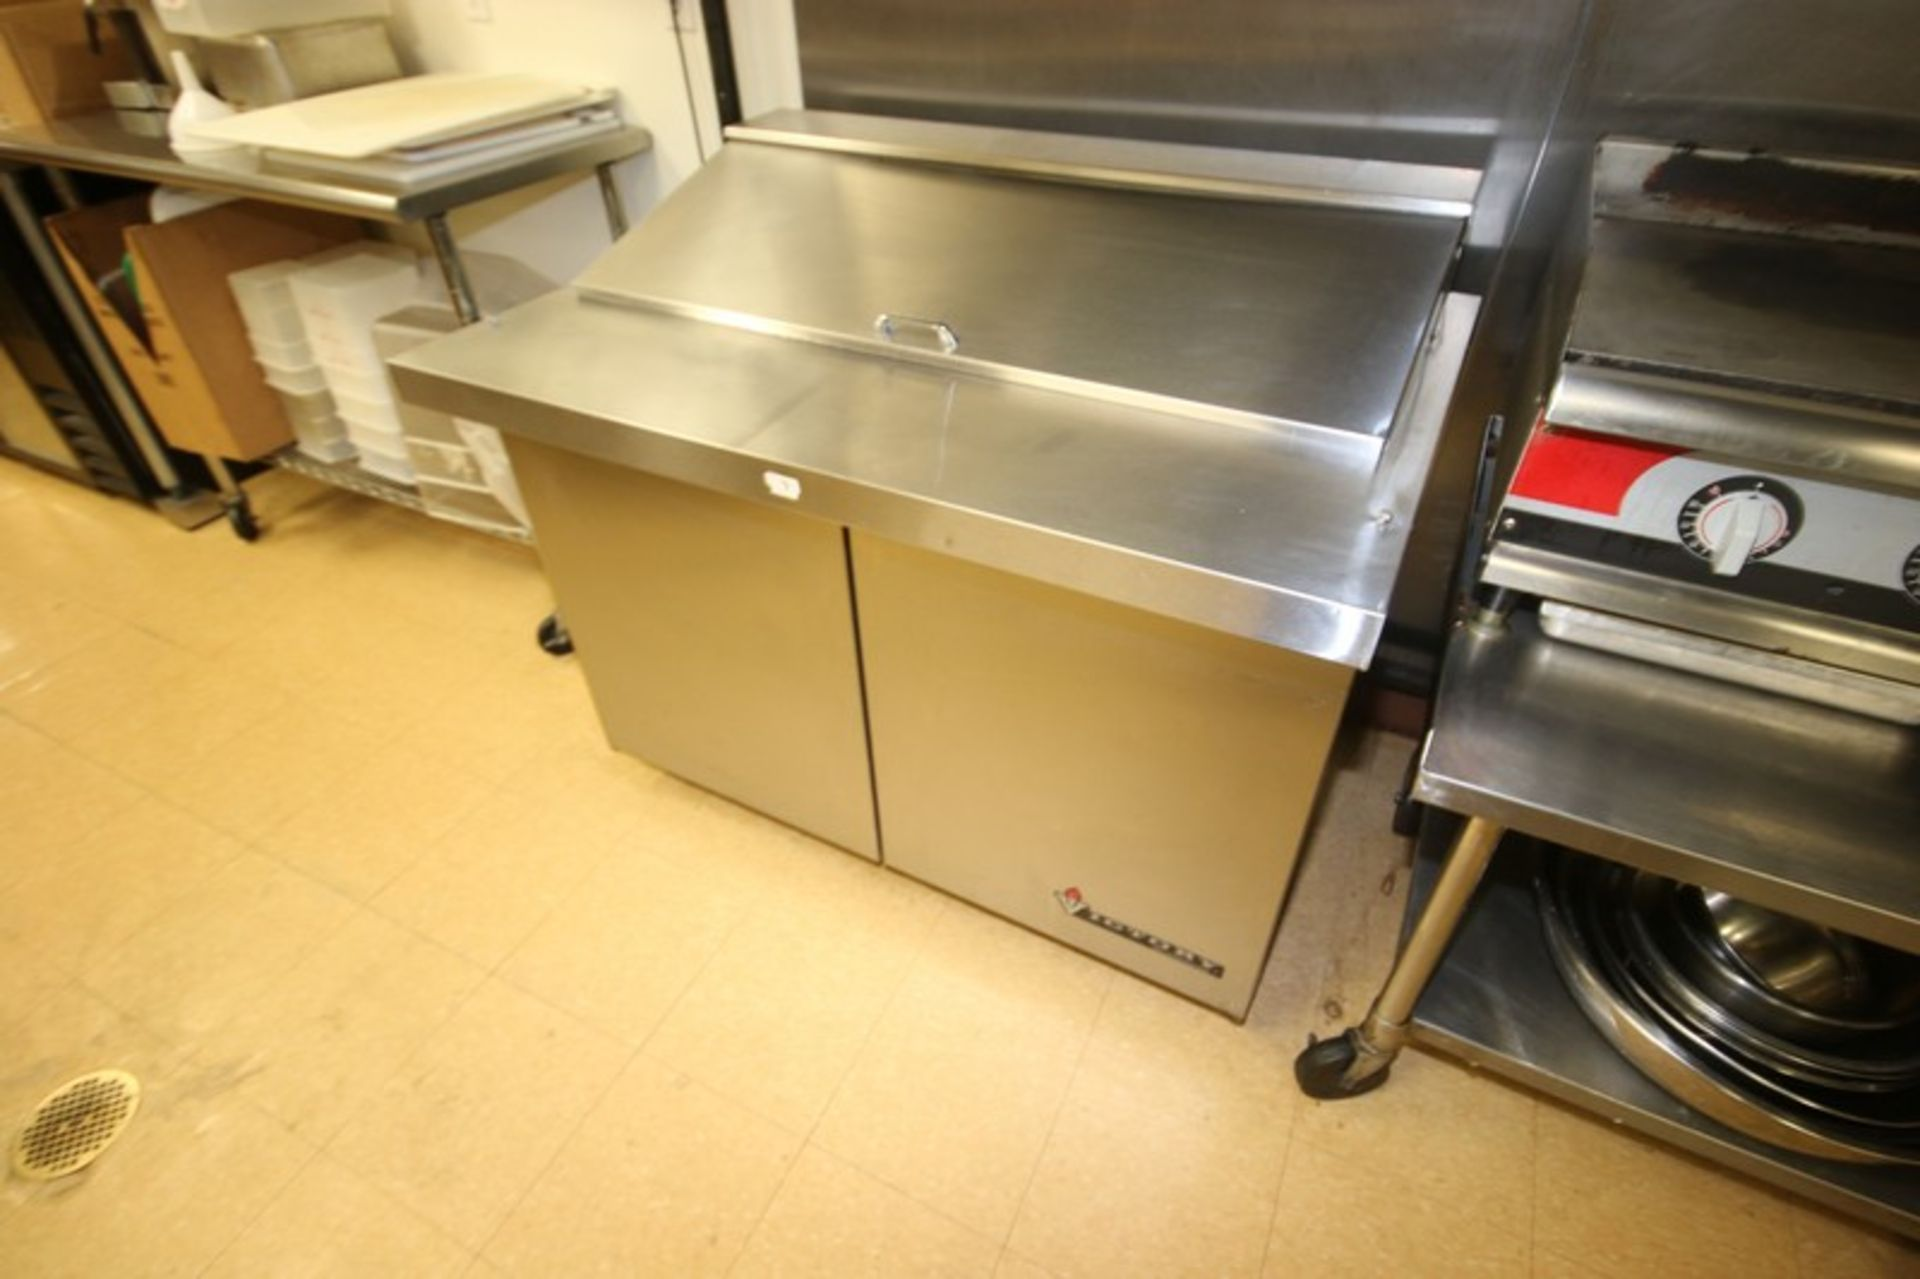 Victory S/S Refrigerated Counter, with 2-Door Bottom Refrigerated Compartment, with S/S Fold Up Door - Image 2 of 4